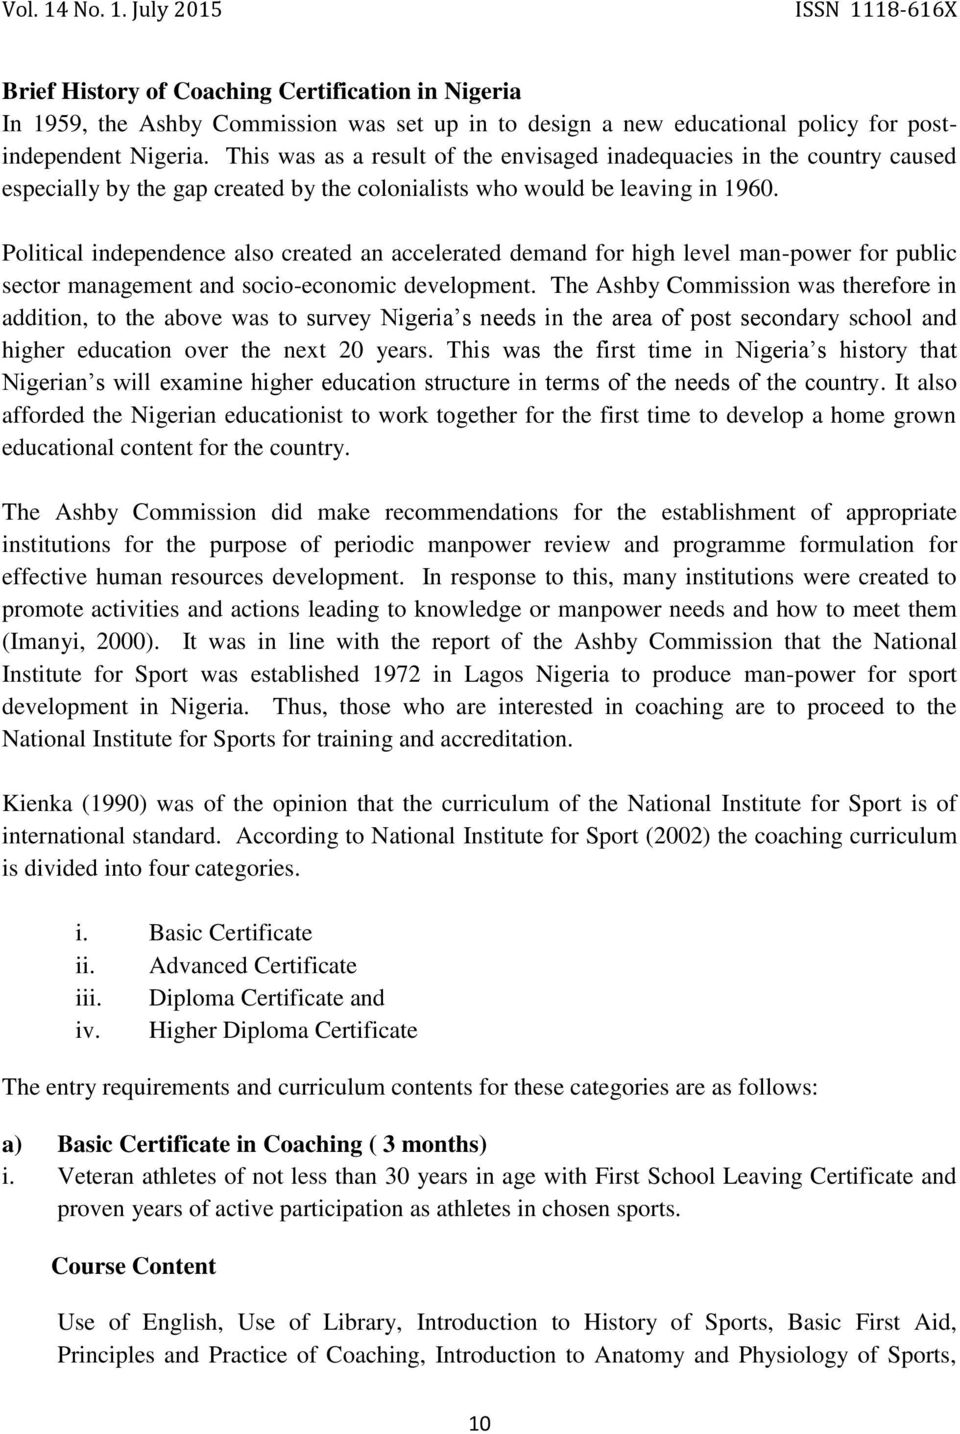 An Assessement Of Coaching Certification In Nigeria Within Global